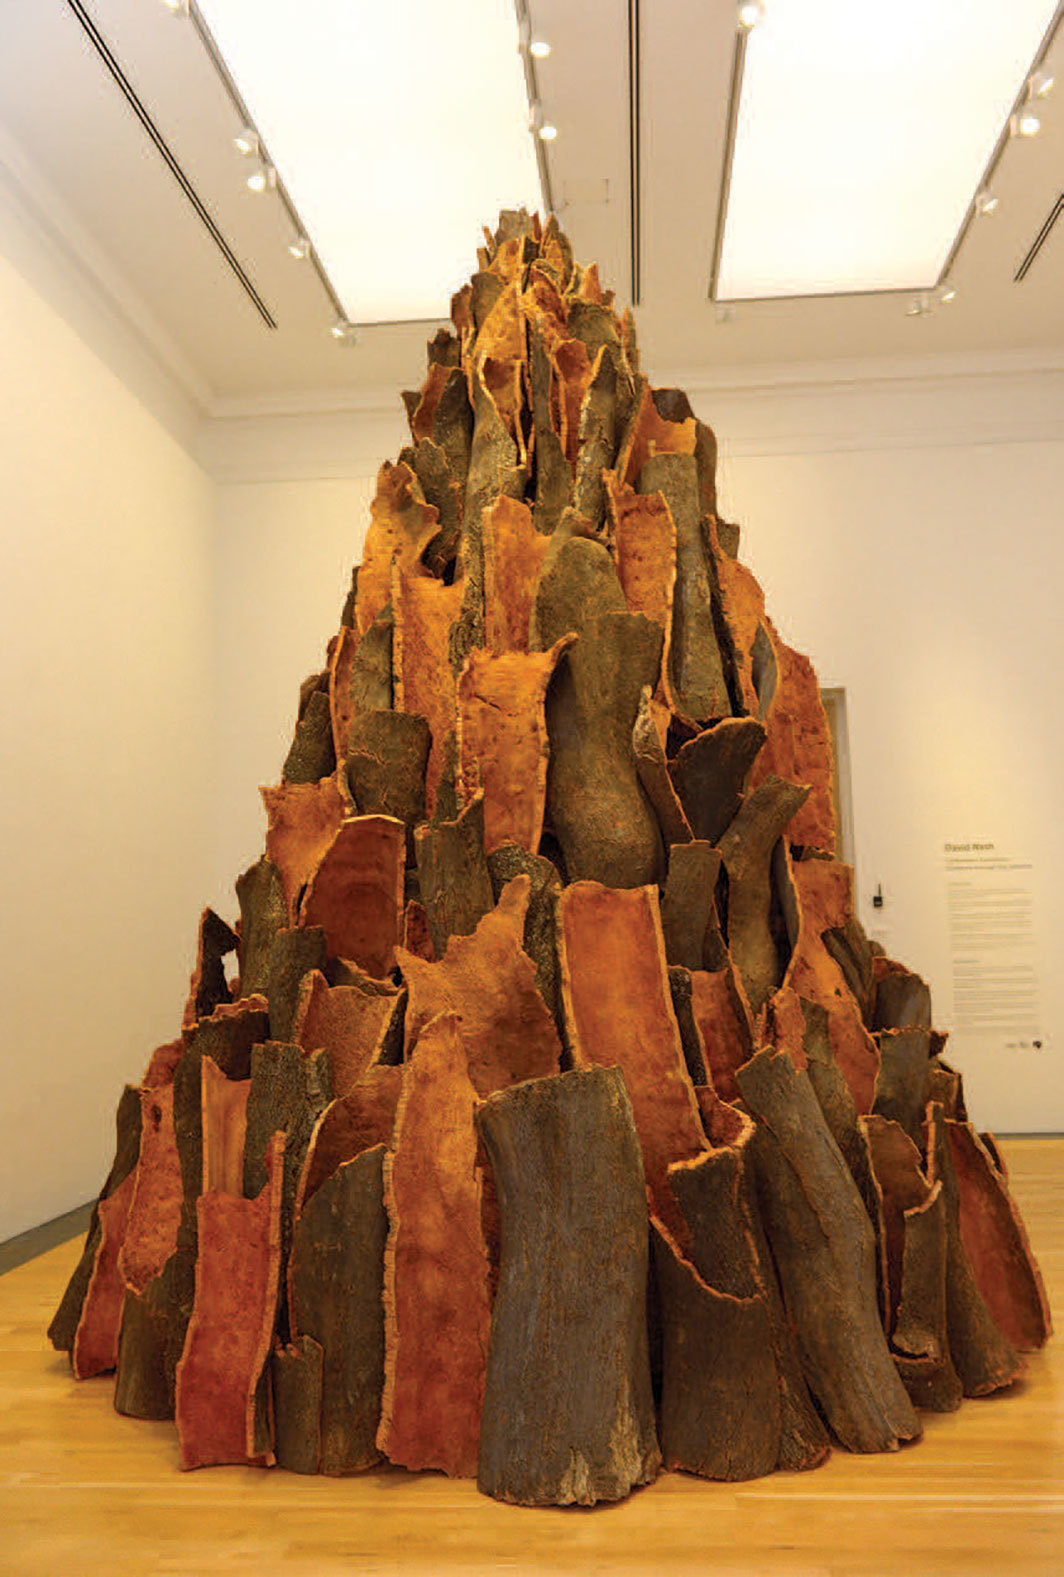 "David Nash, Cork Spire, 2012, cork bark, 17' 3 1⁄8"" × 13' 11 3⁄8"" × 13' 11 3⁄8""."